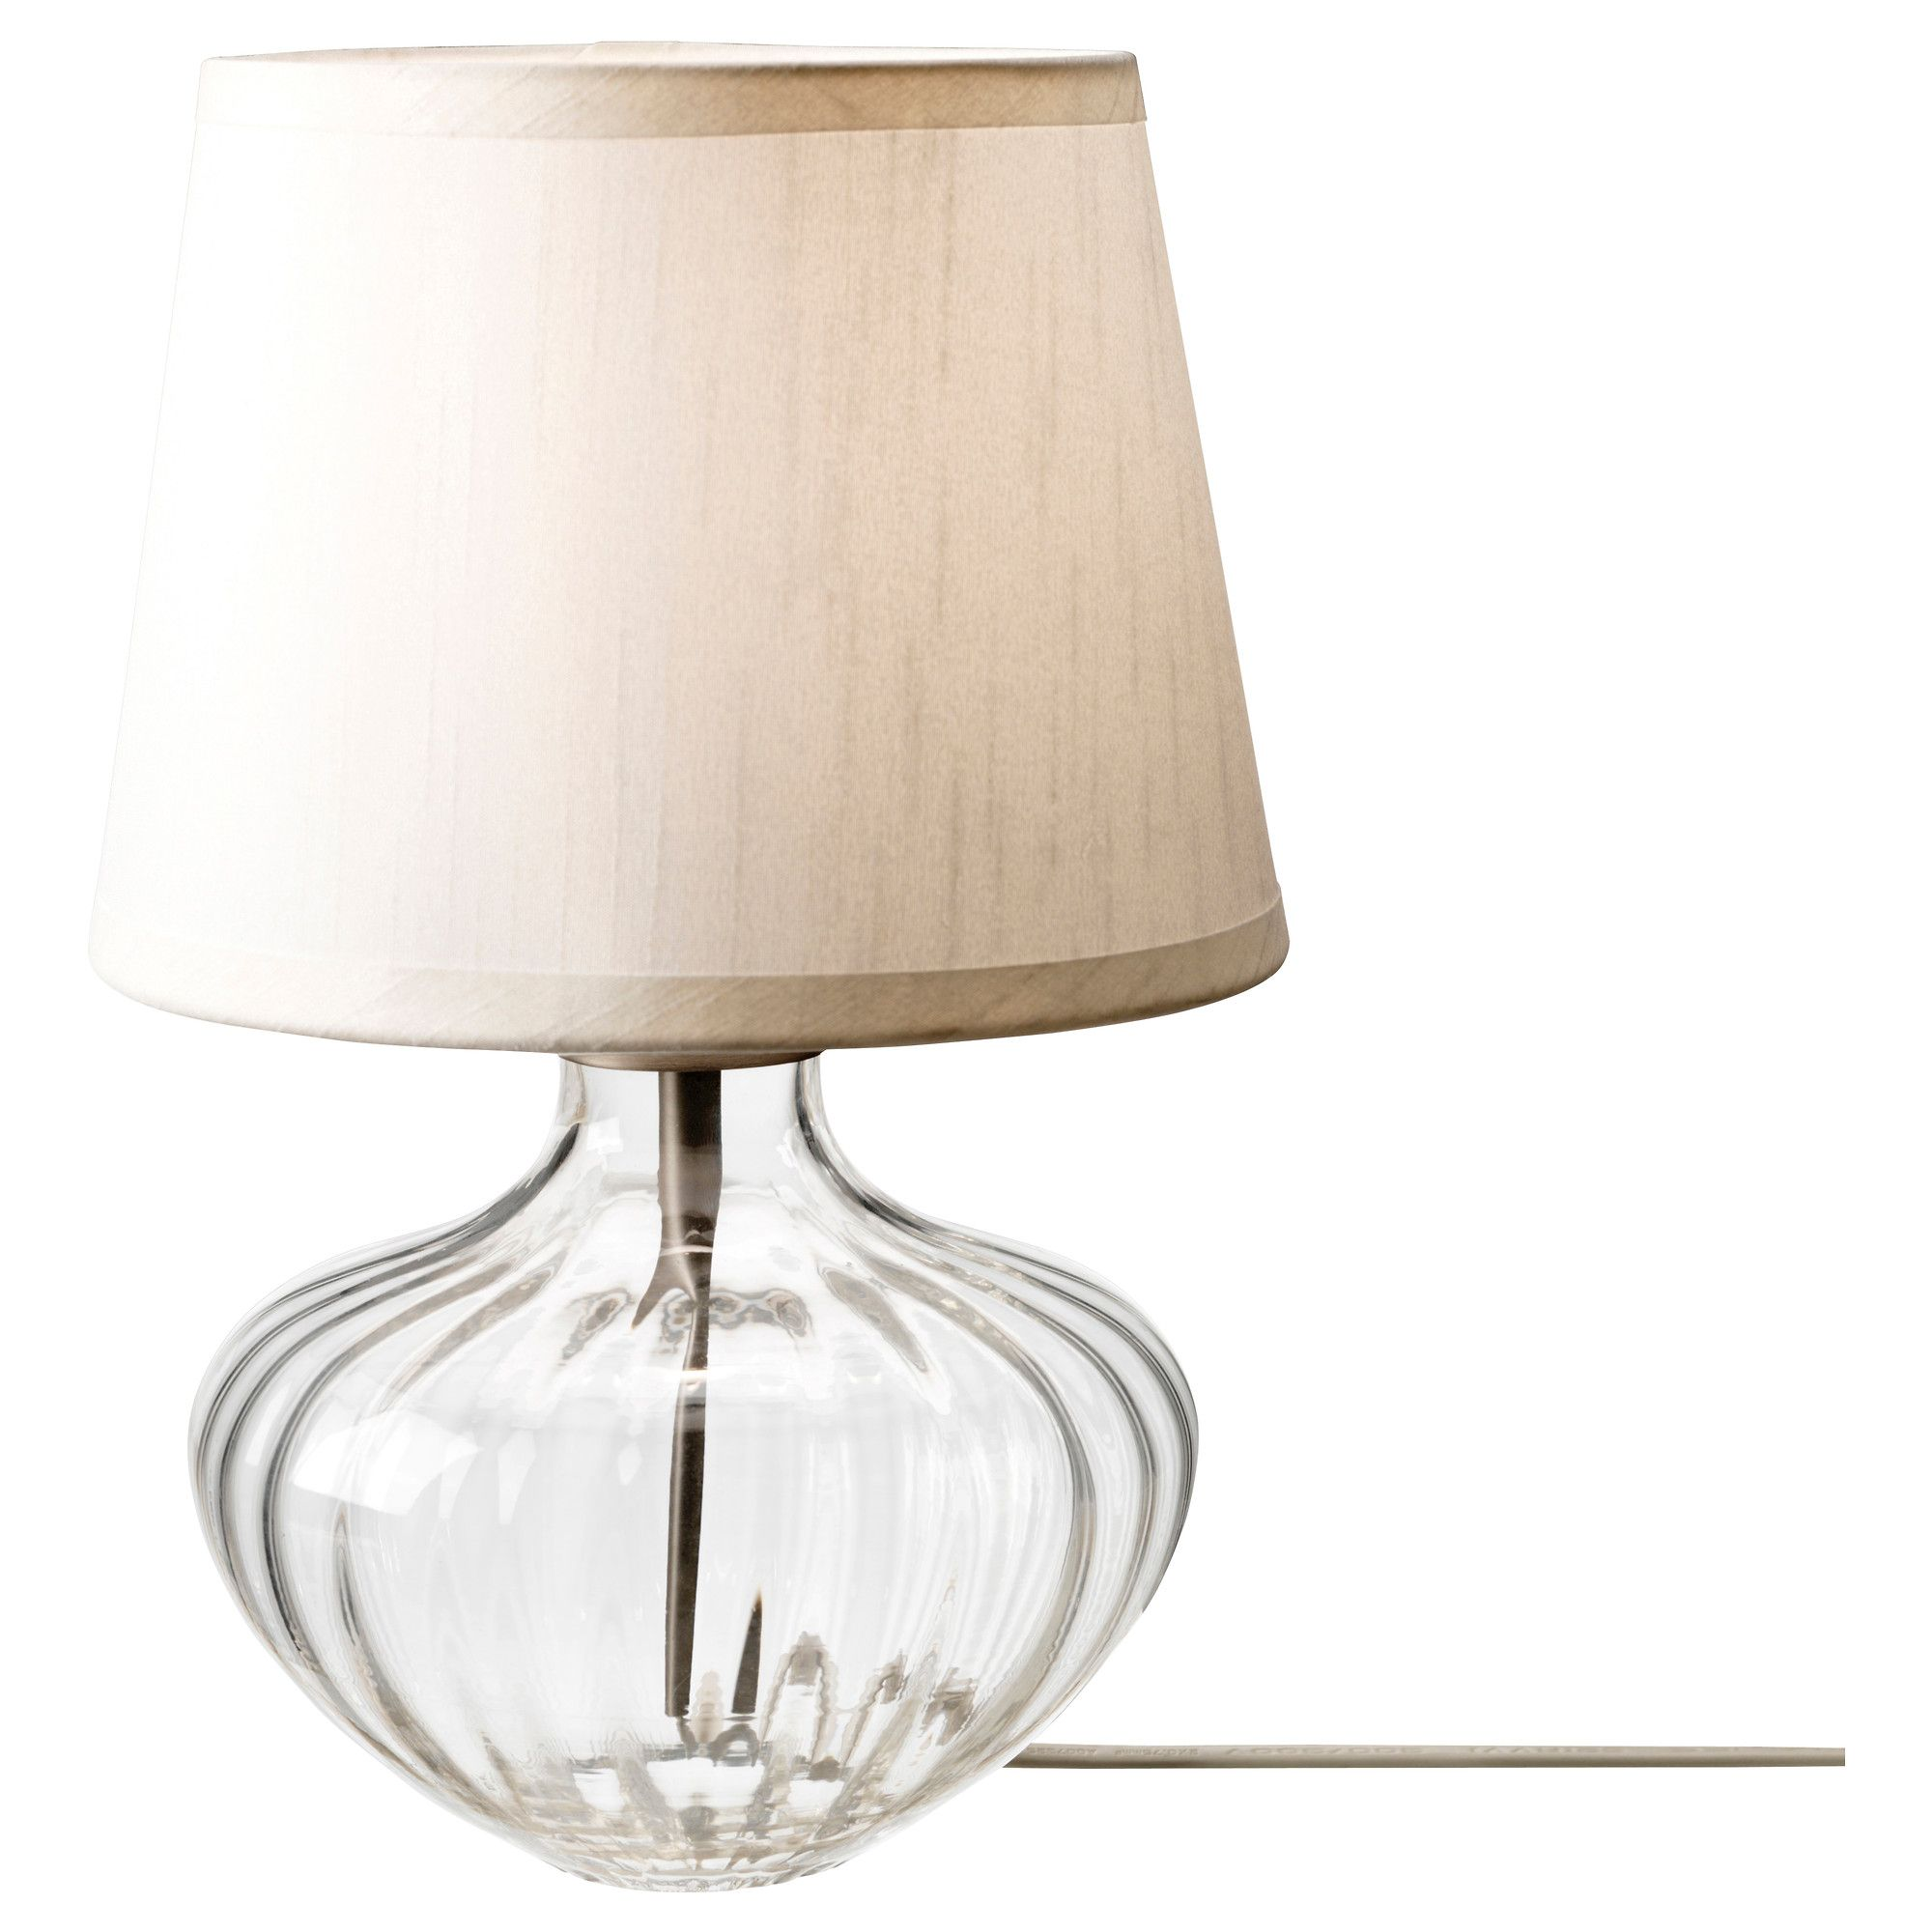 Ikea Us Furniture And Home Furnishings Lamp Ikea Lamp Table Lamp